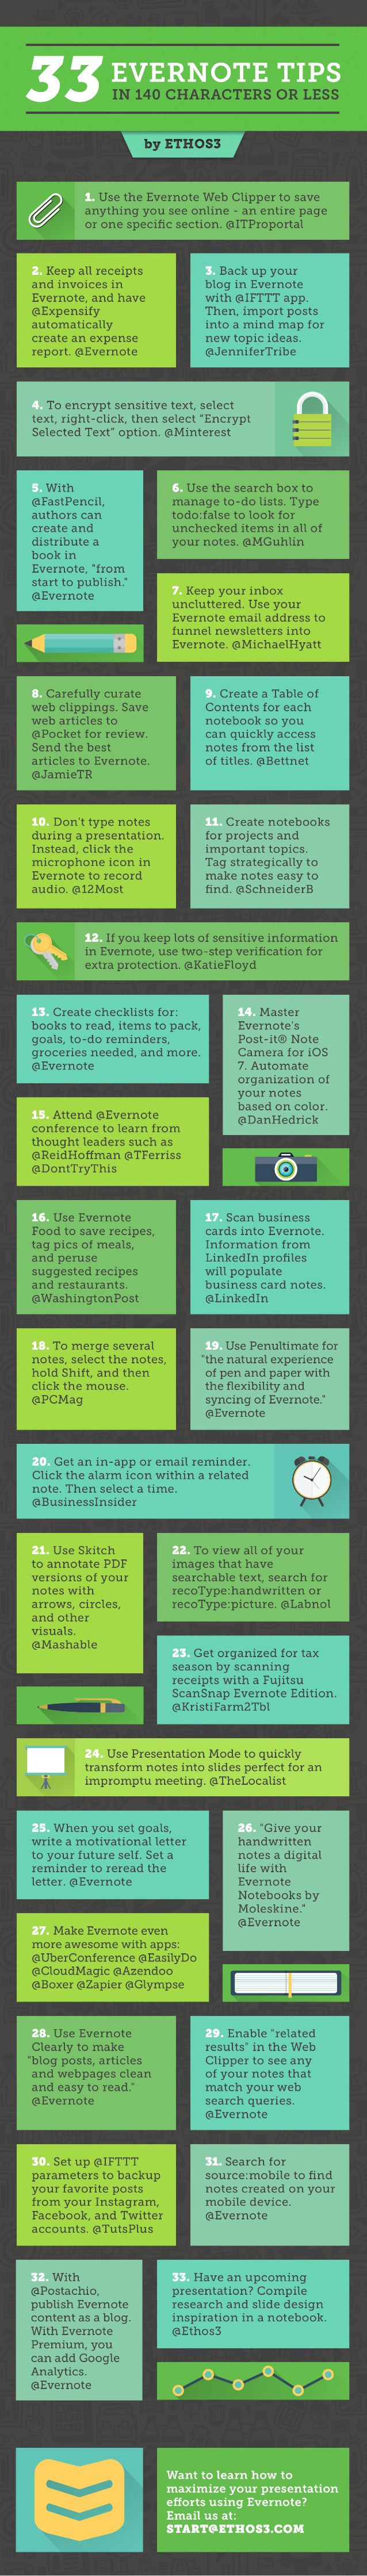 162 best evernote images on pinterest evernote computer tips and 33 consejos sobre evernote en 140 caracteres reheart Images